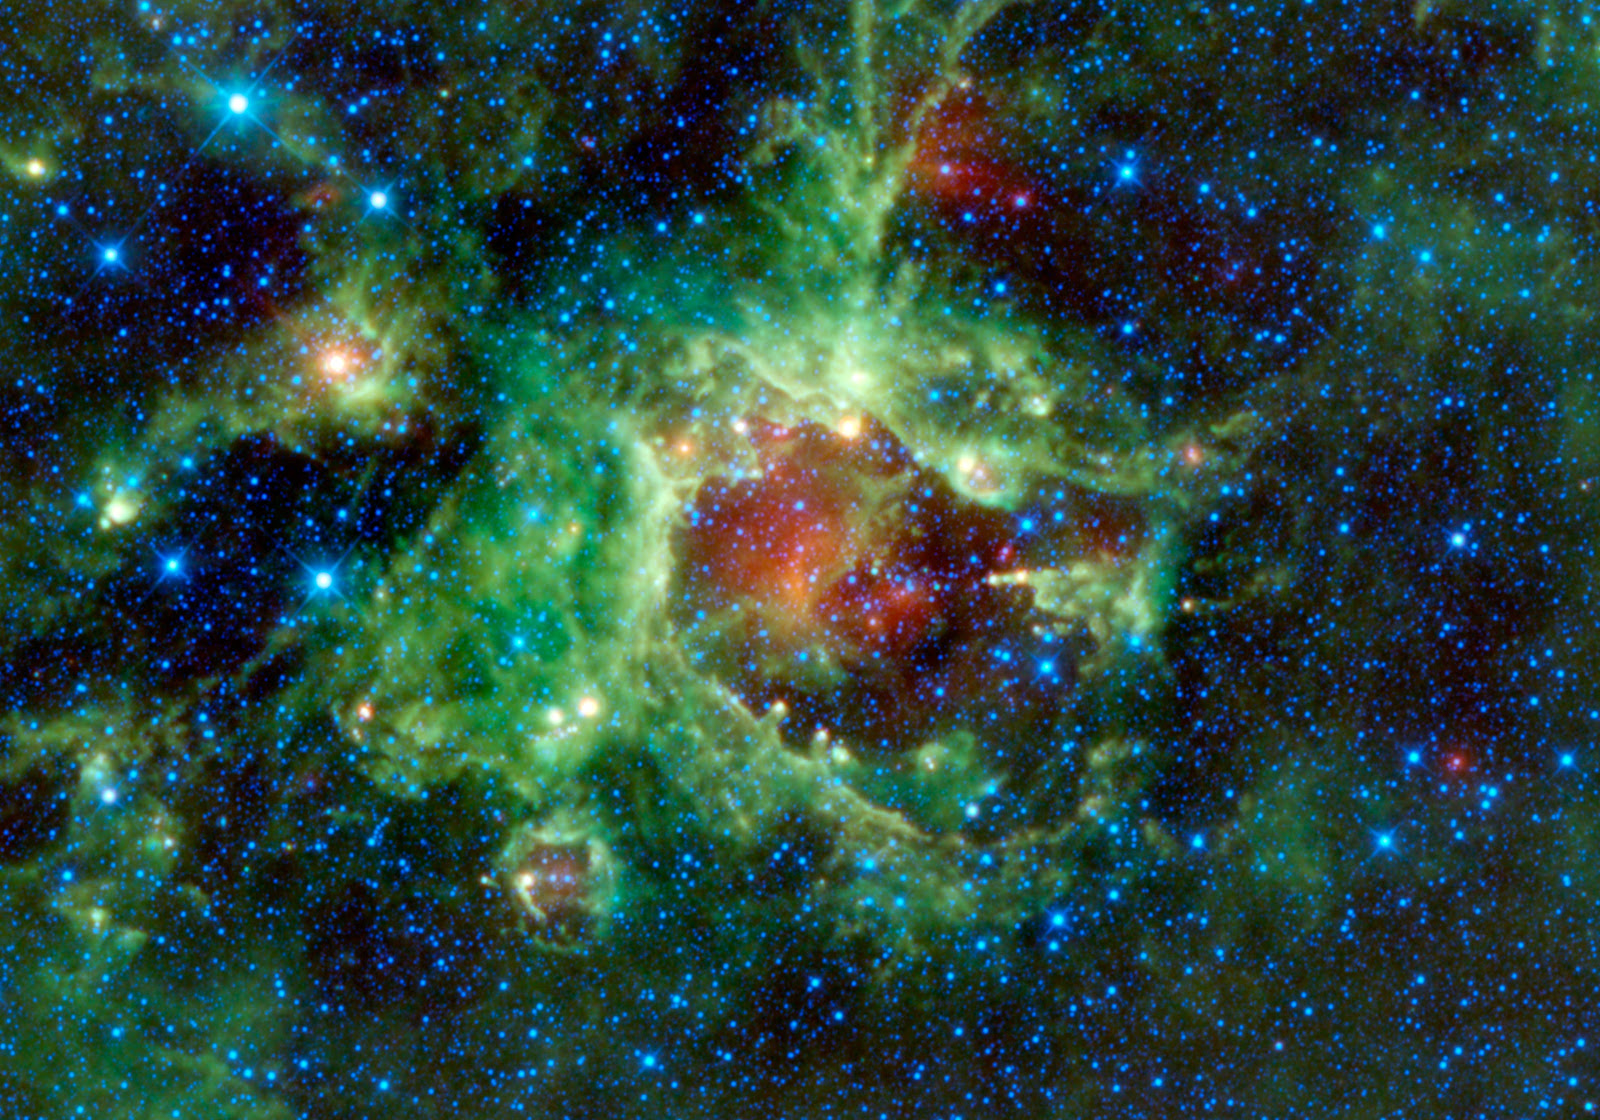 Red And Green Space Nebula